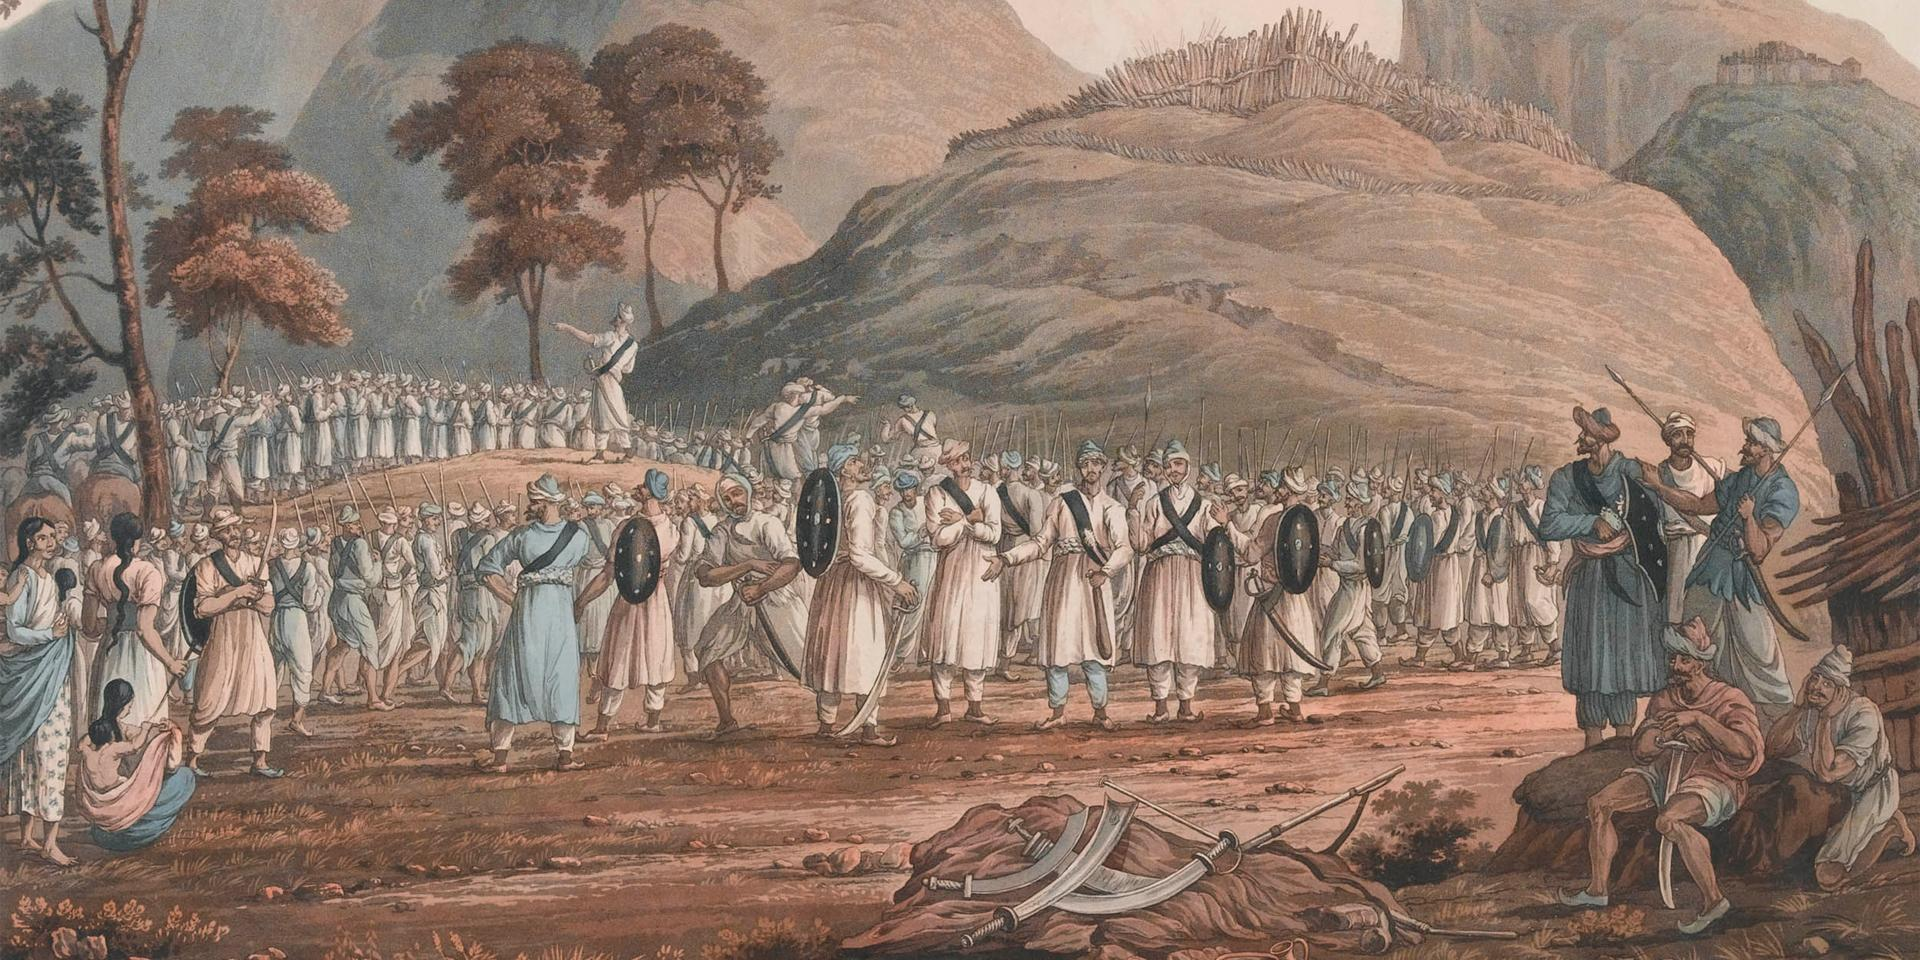 An early depiction of Gurkhas by James Baillie Fraser, 1815